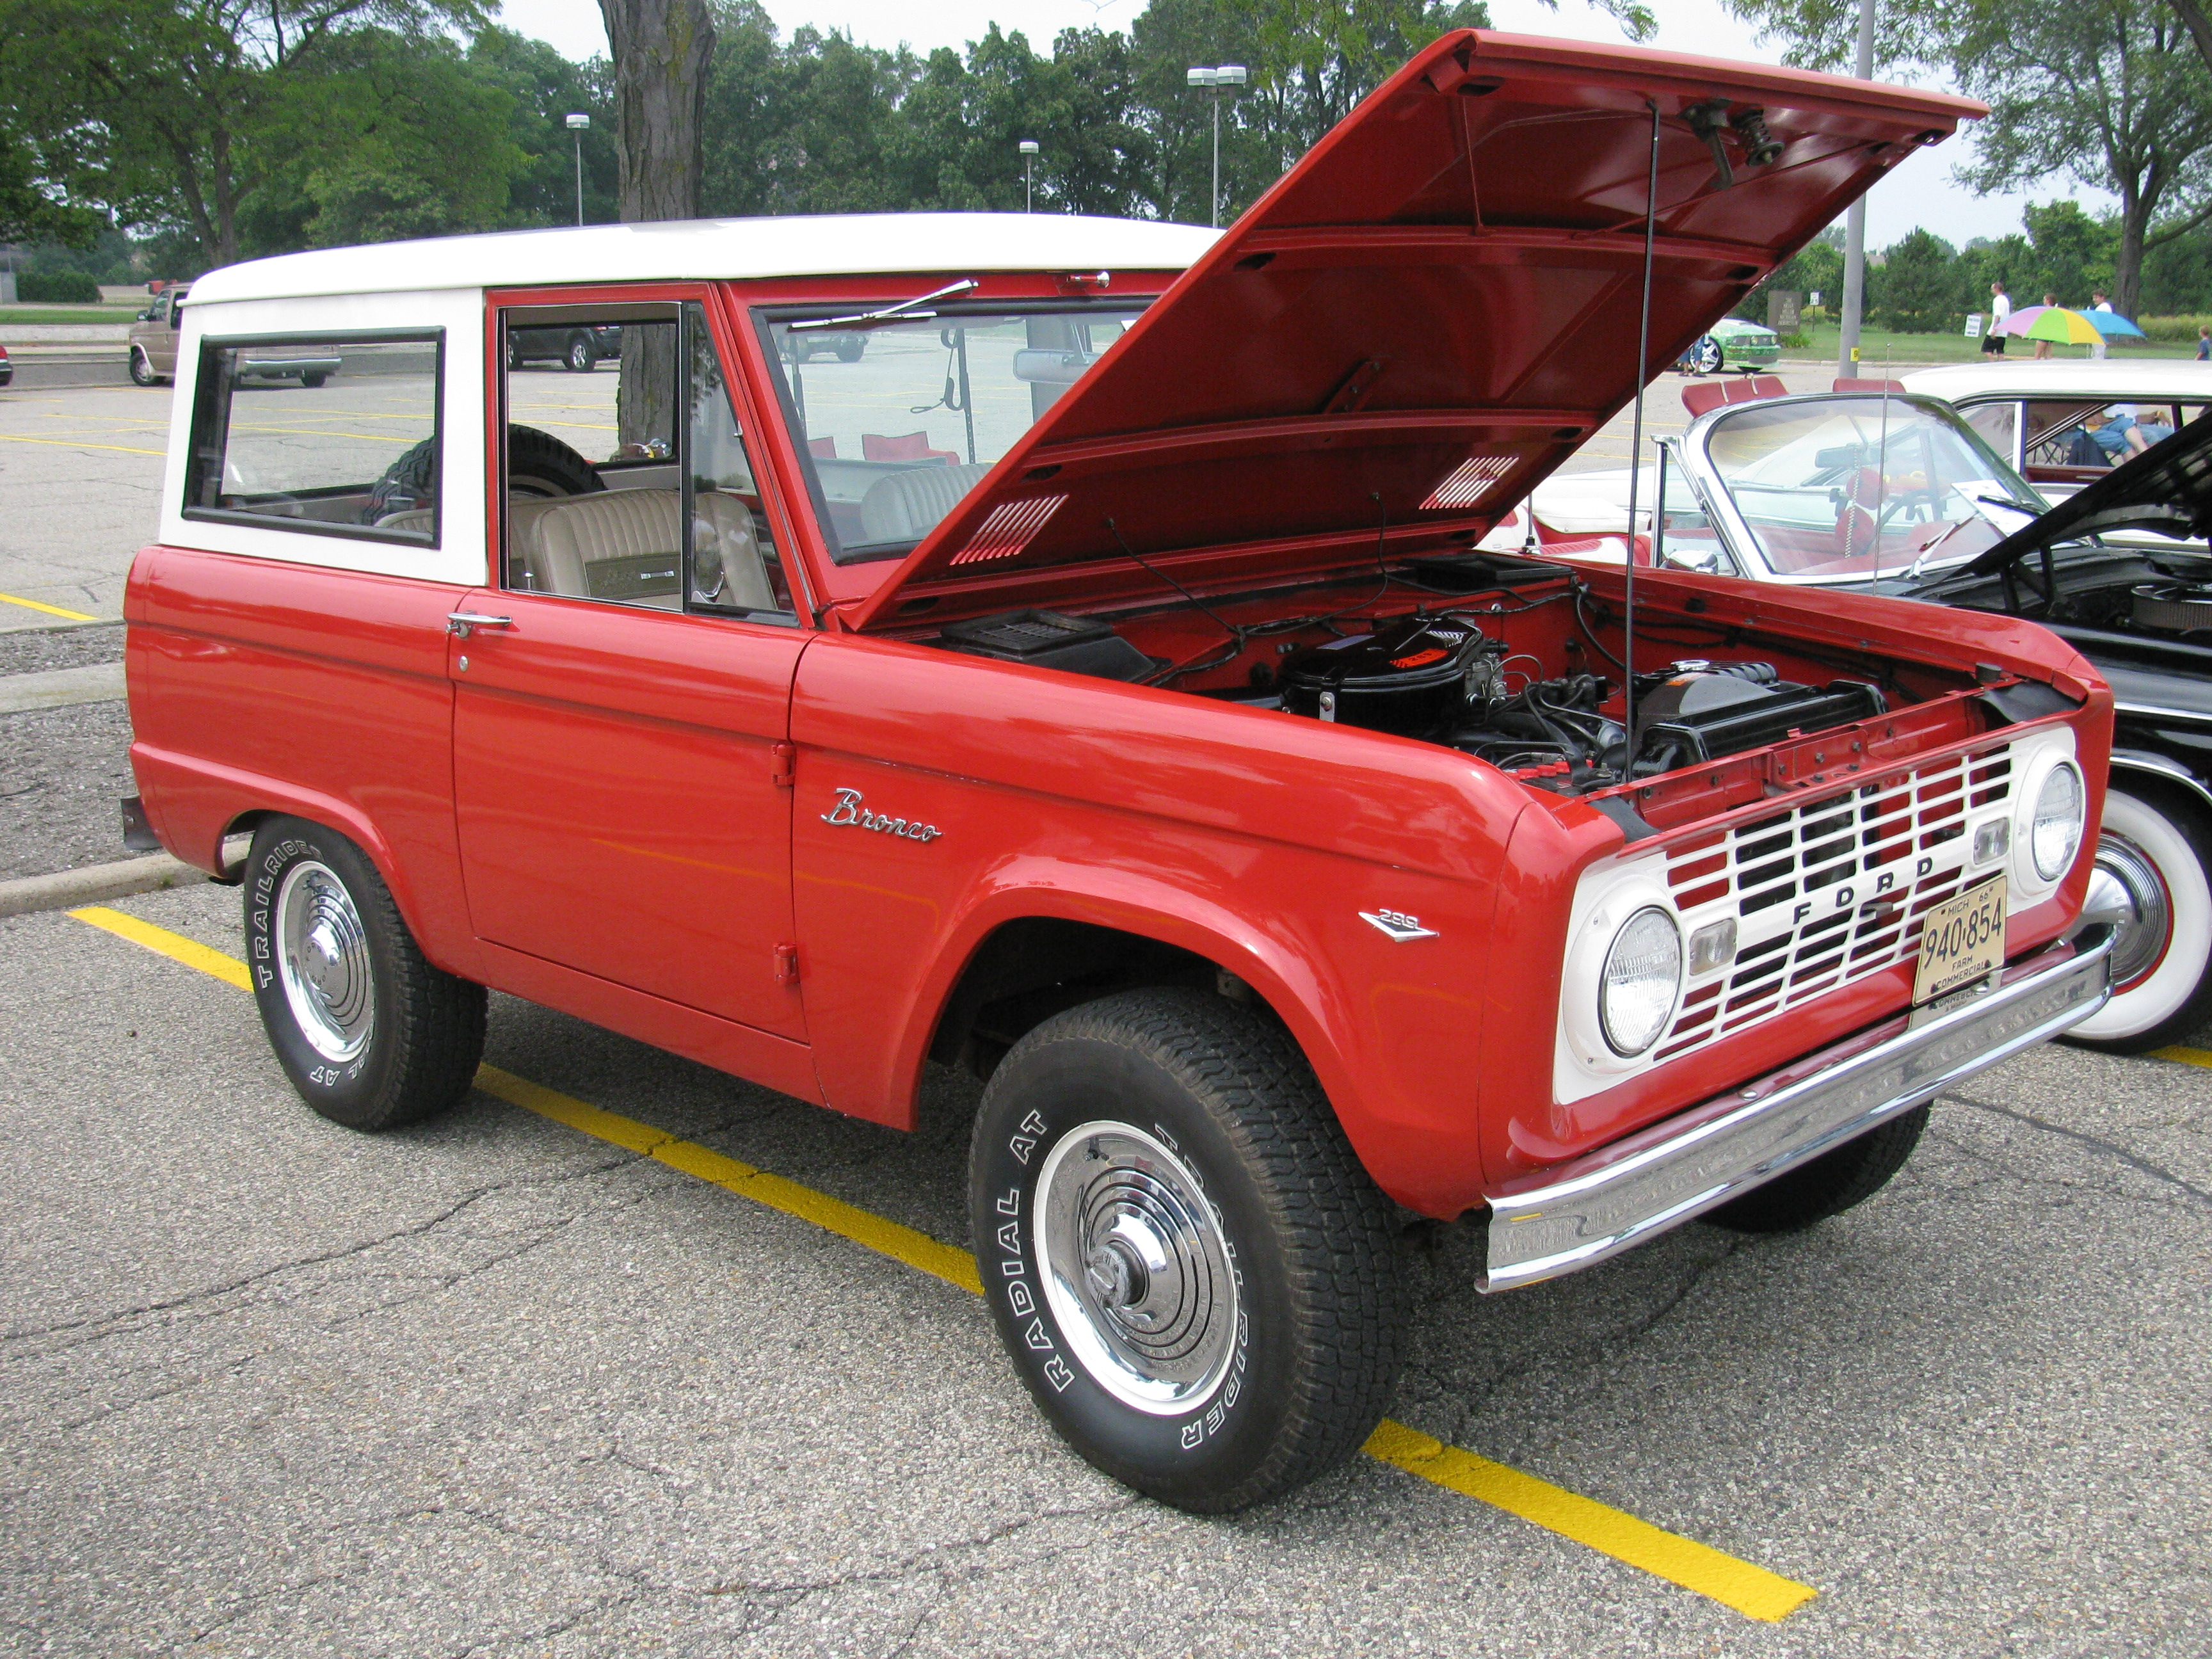 2016 Ford Bronco >> 1966 Ford Bronco Images | Pictures and Videos